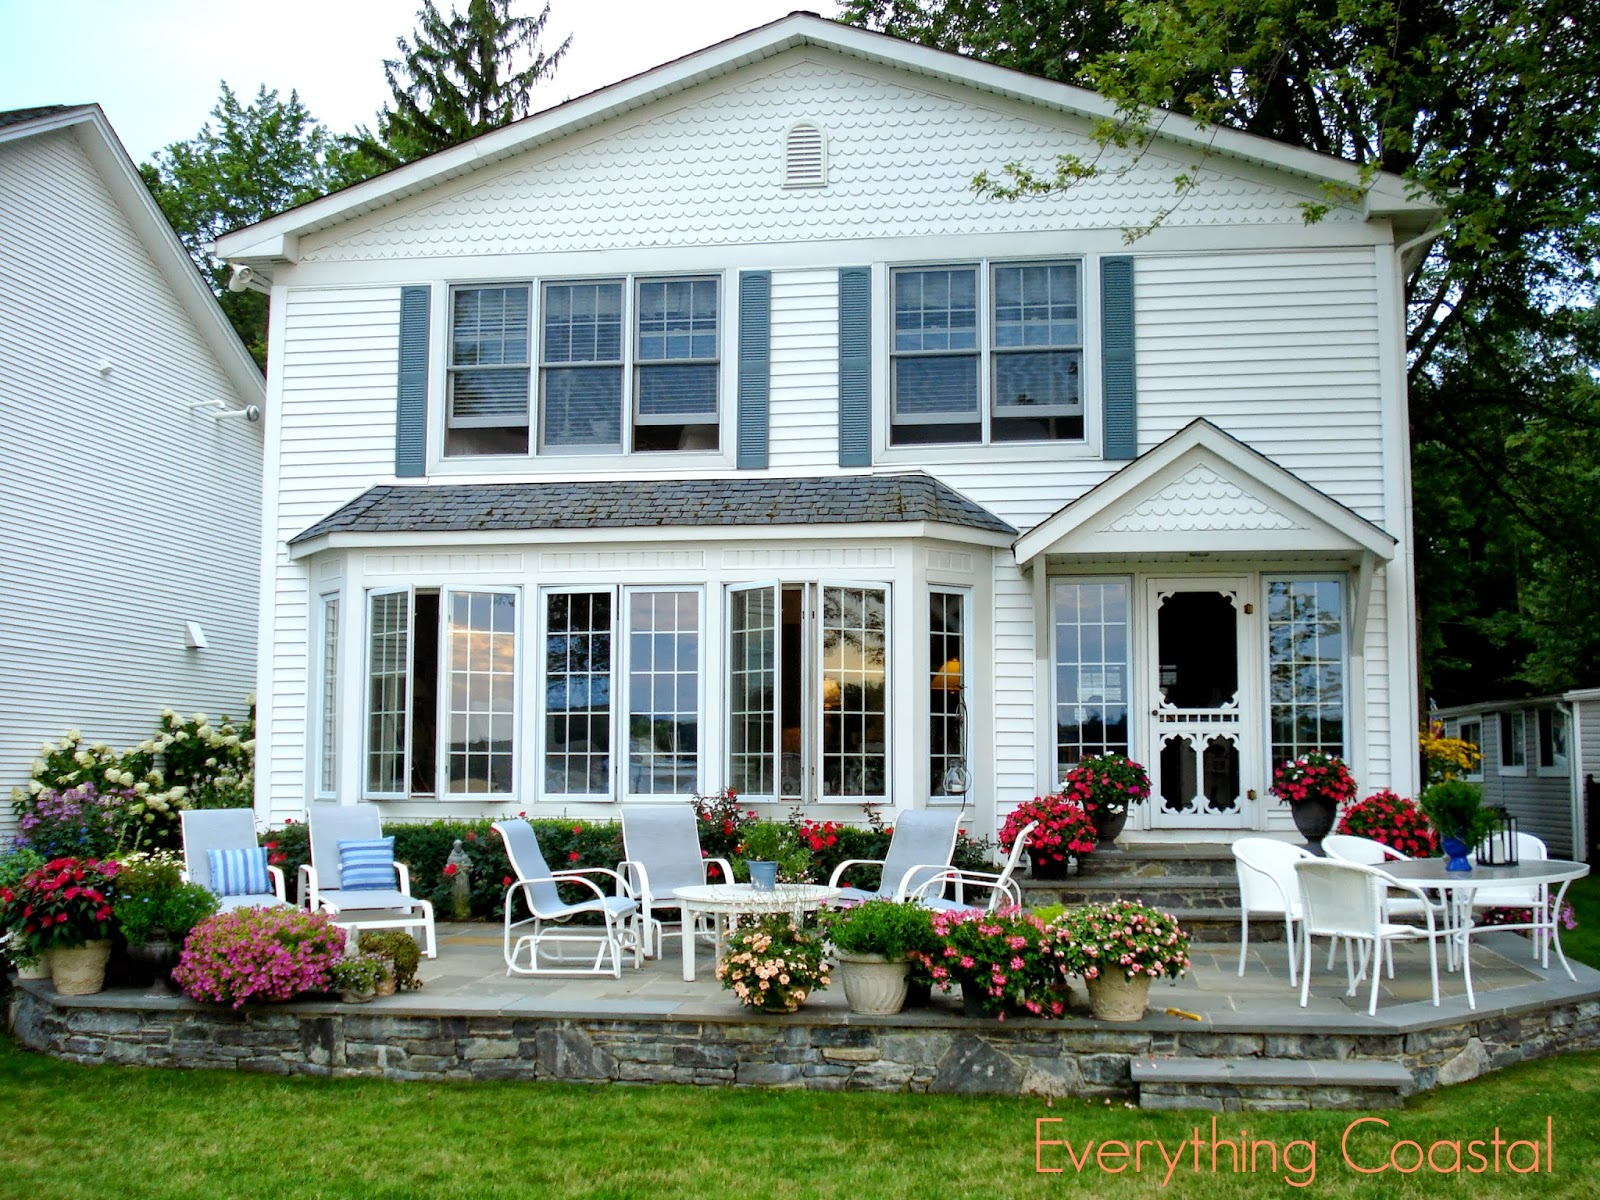 Everything Coastal: A Michigan Lakefront Storybook Cottage